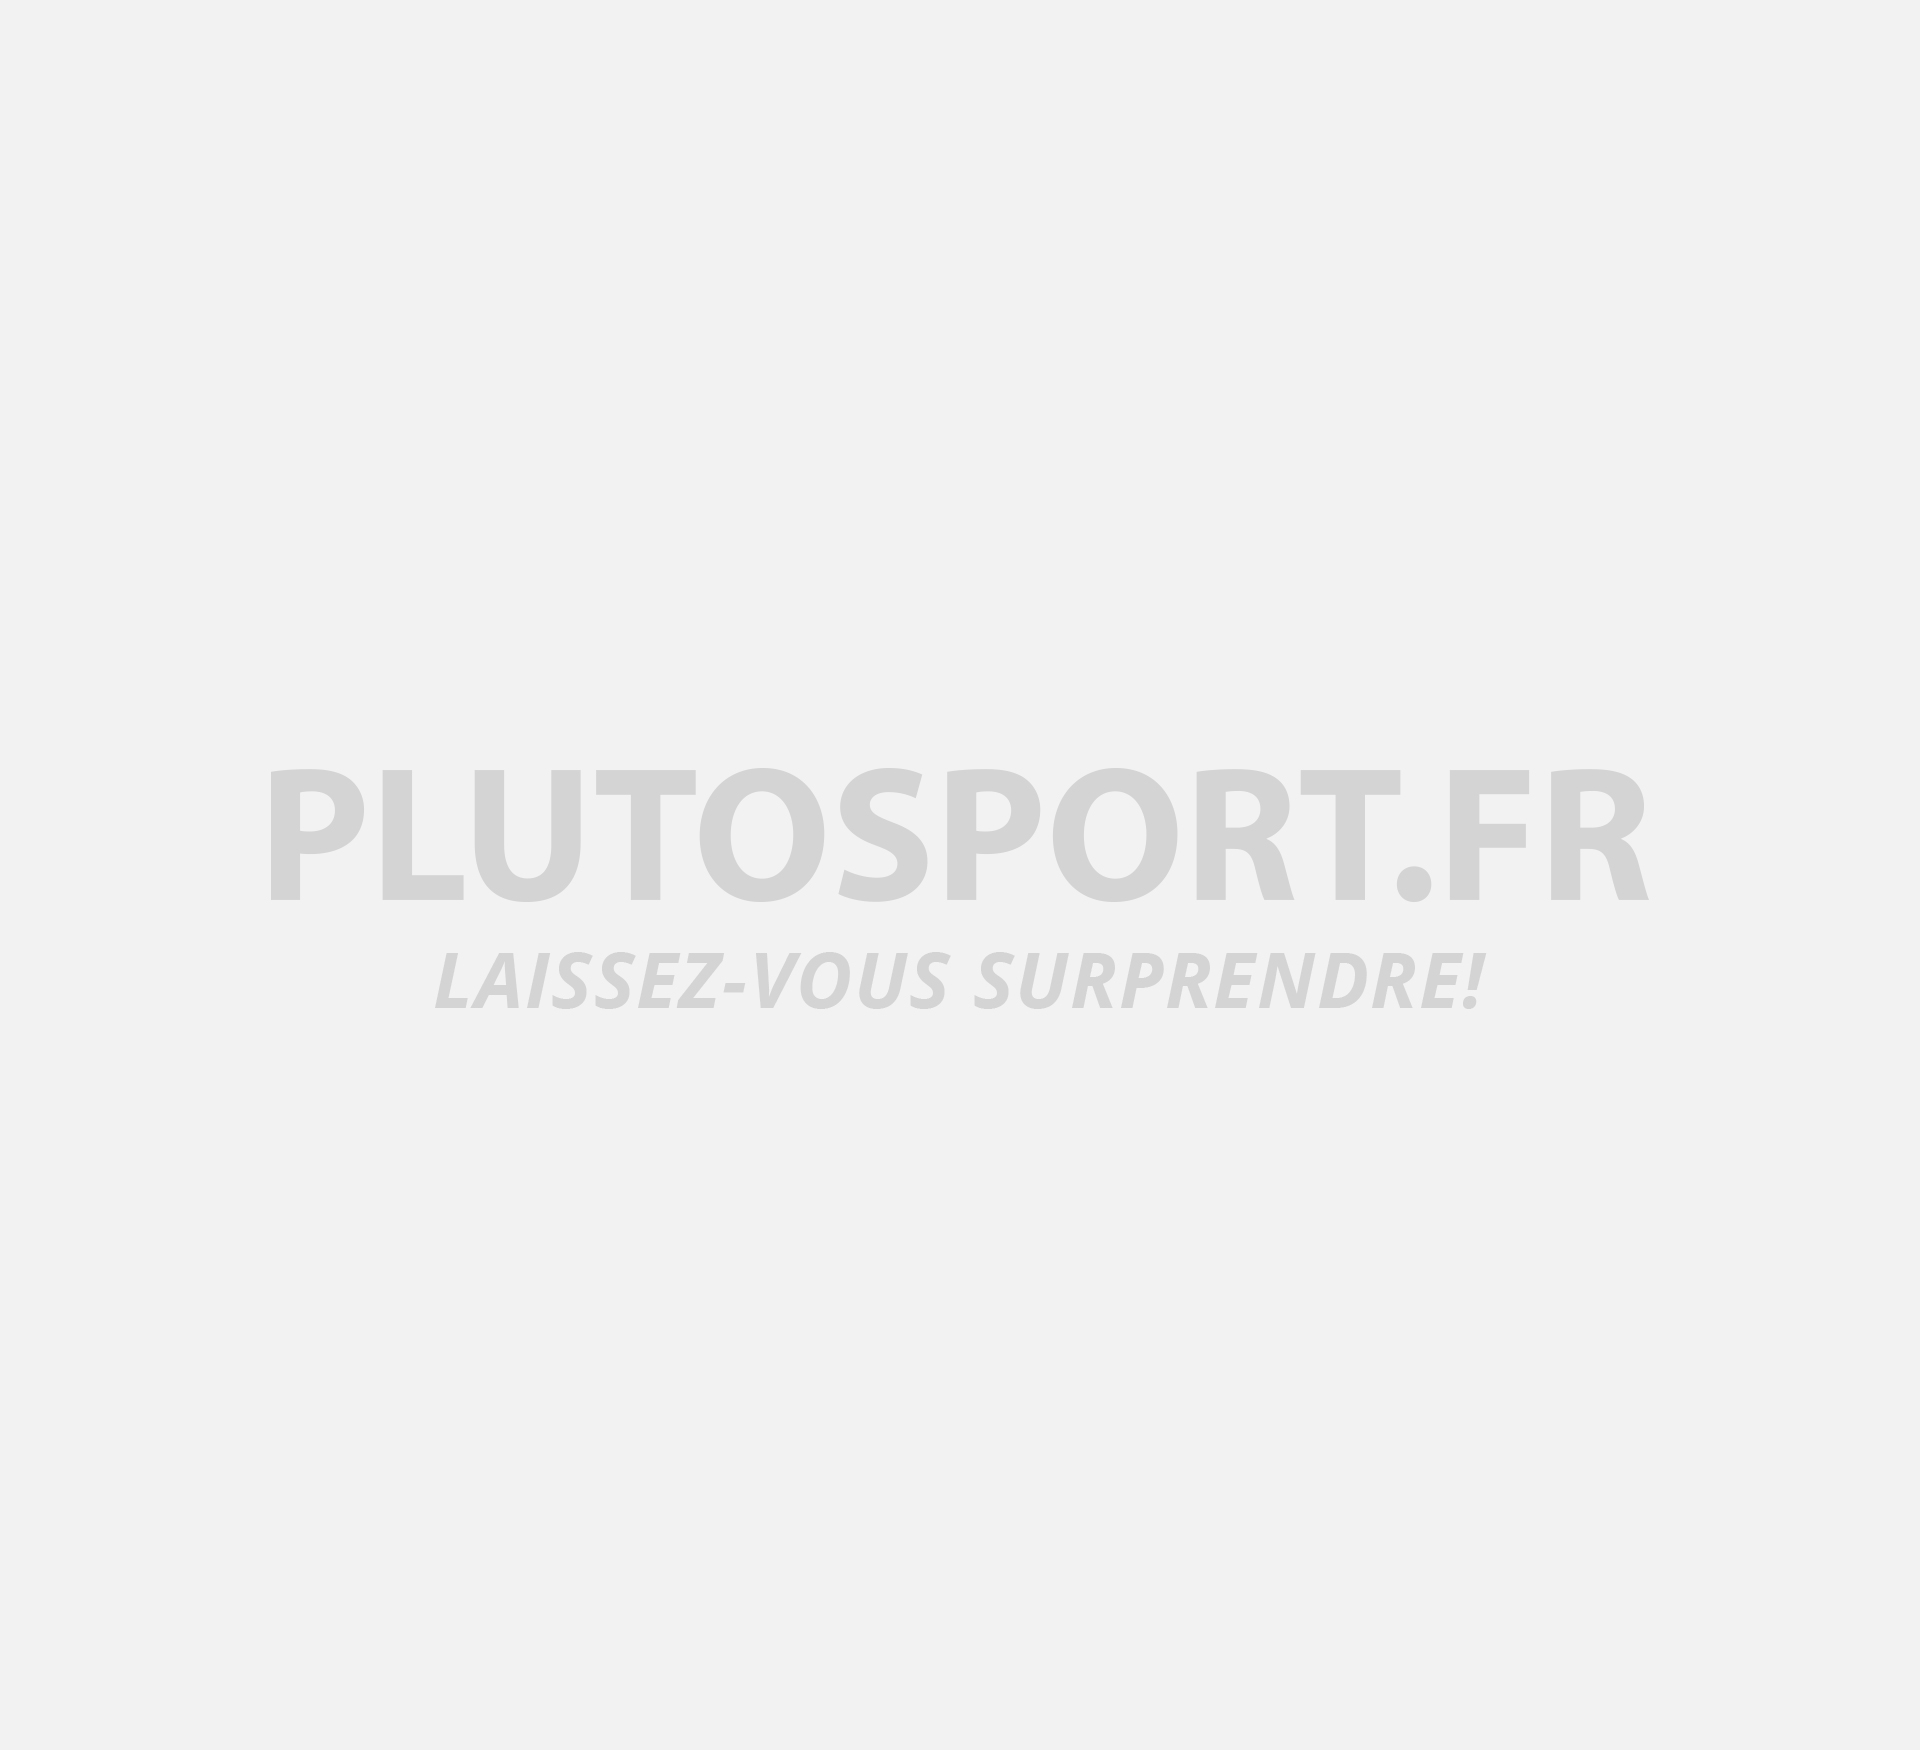 Mac in a Sac Mias Origin Rain Jacket Jr. Veste